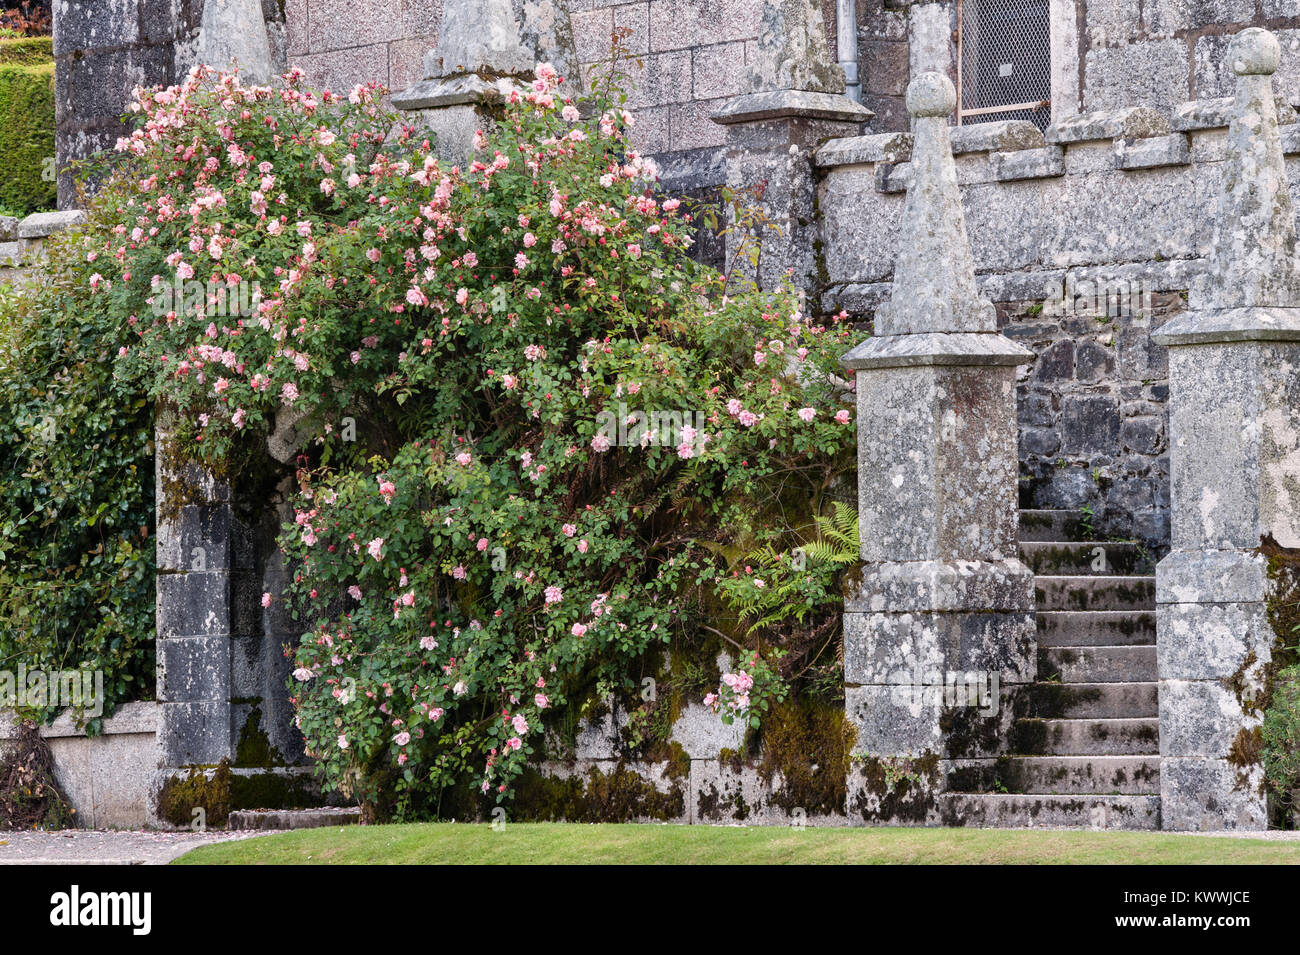 Lanhydrock, Bodmin, Cornwall, UK. Climbing roses scramble over a wall in the gardens - Stock Image